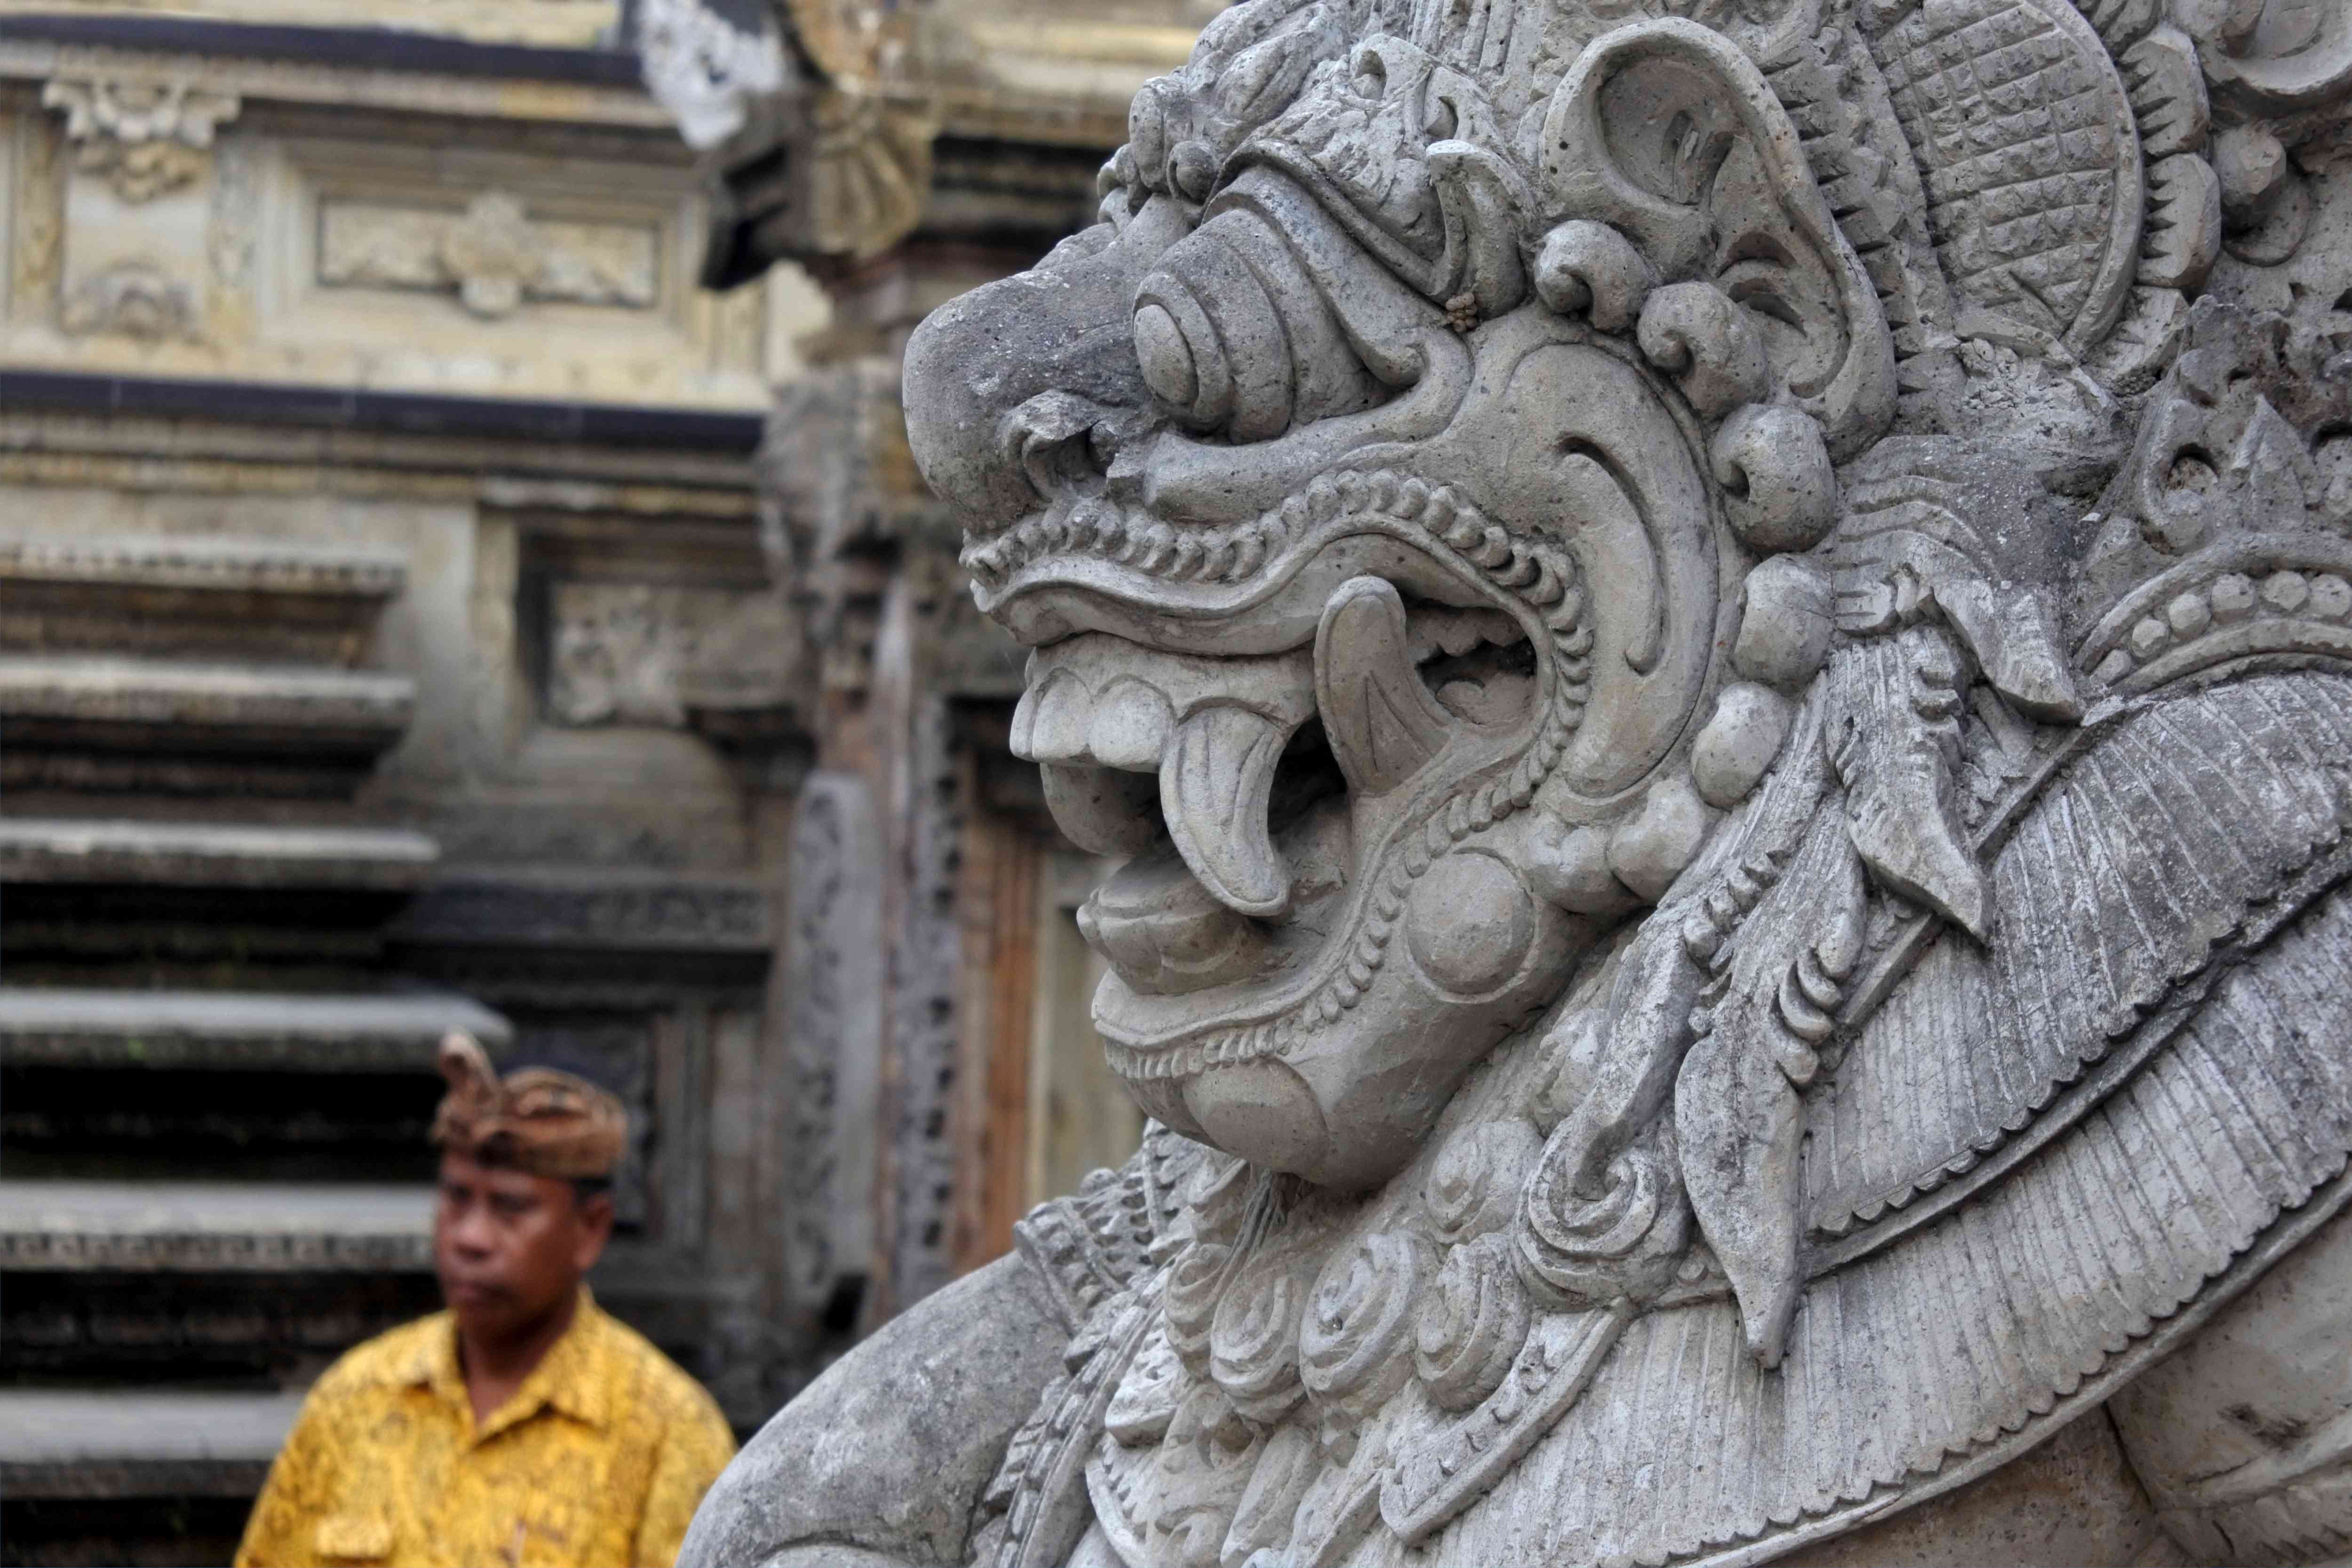 Stone sculpture at a Hindu temple in Bali